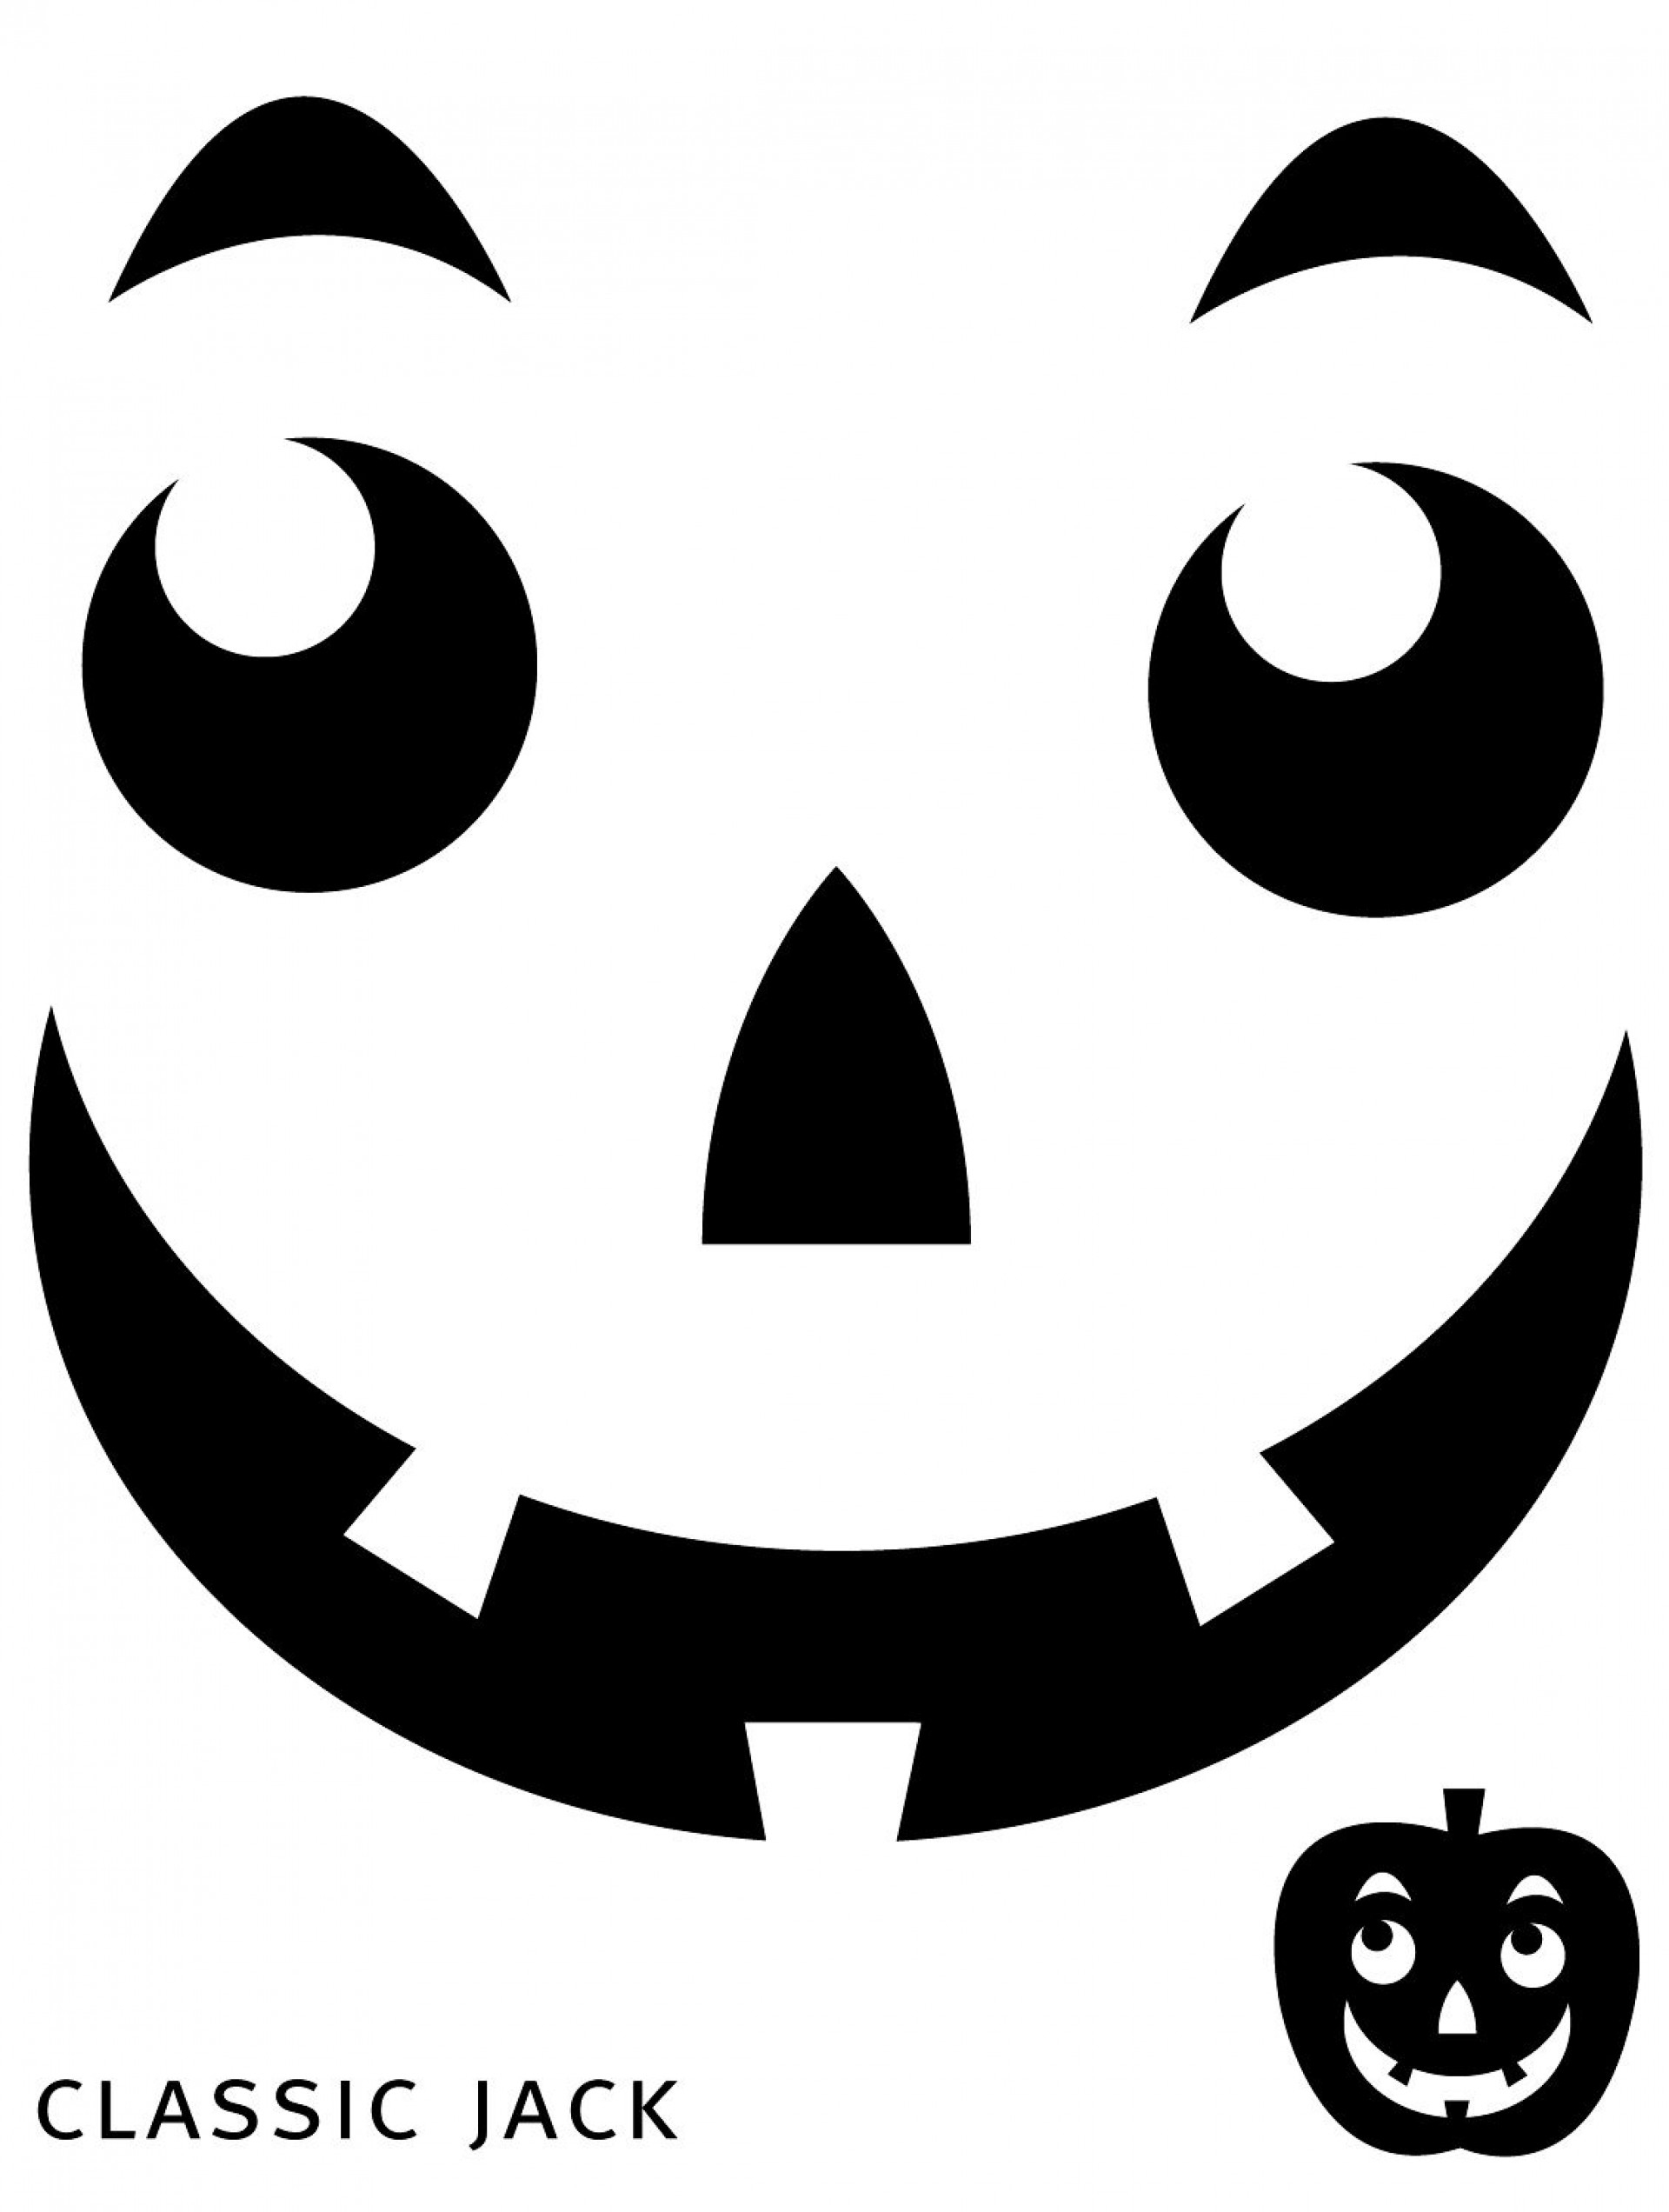 016 Free Pumpkin Carving Templates Printable Eb3Ldog8 Template - Pumpkin Cutouts Printable Free